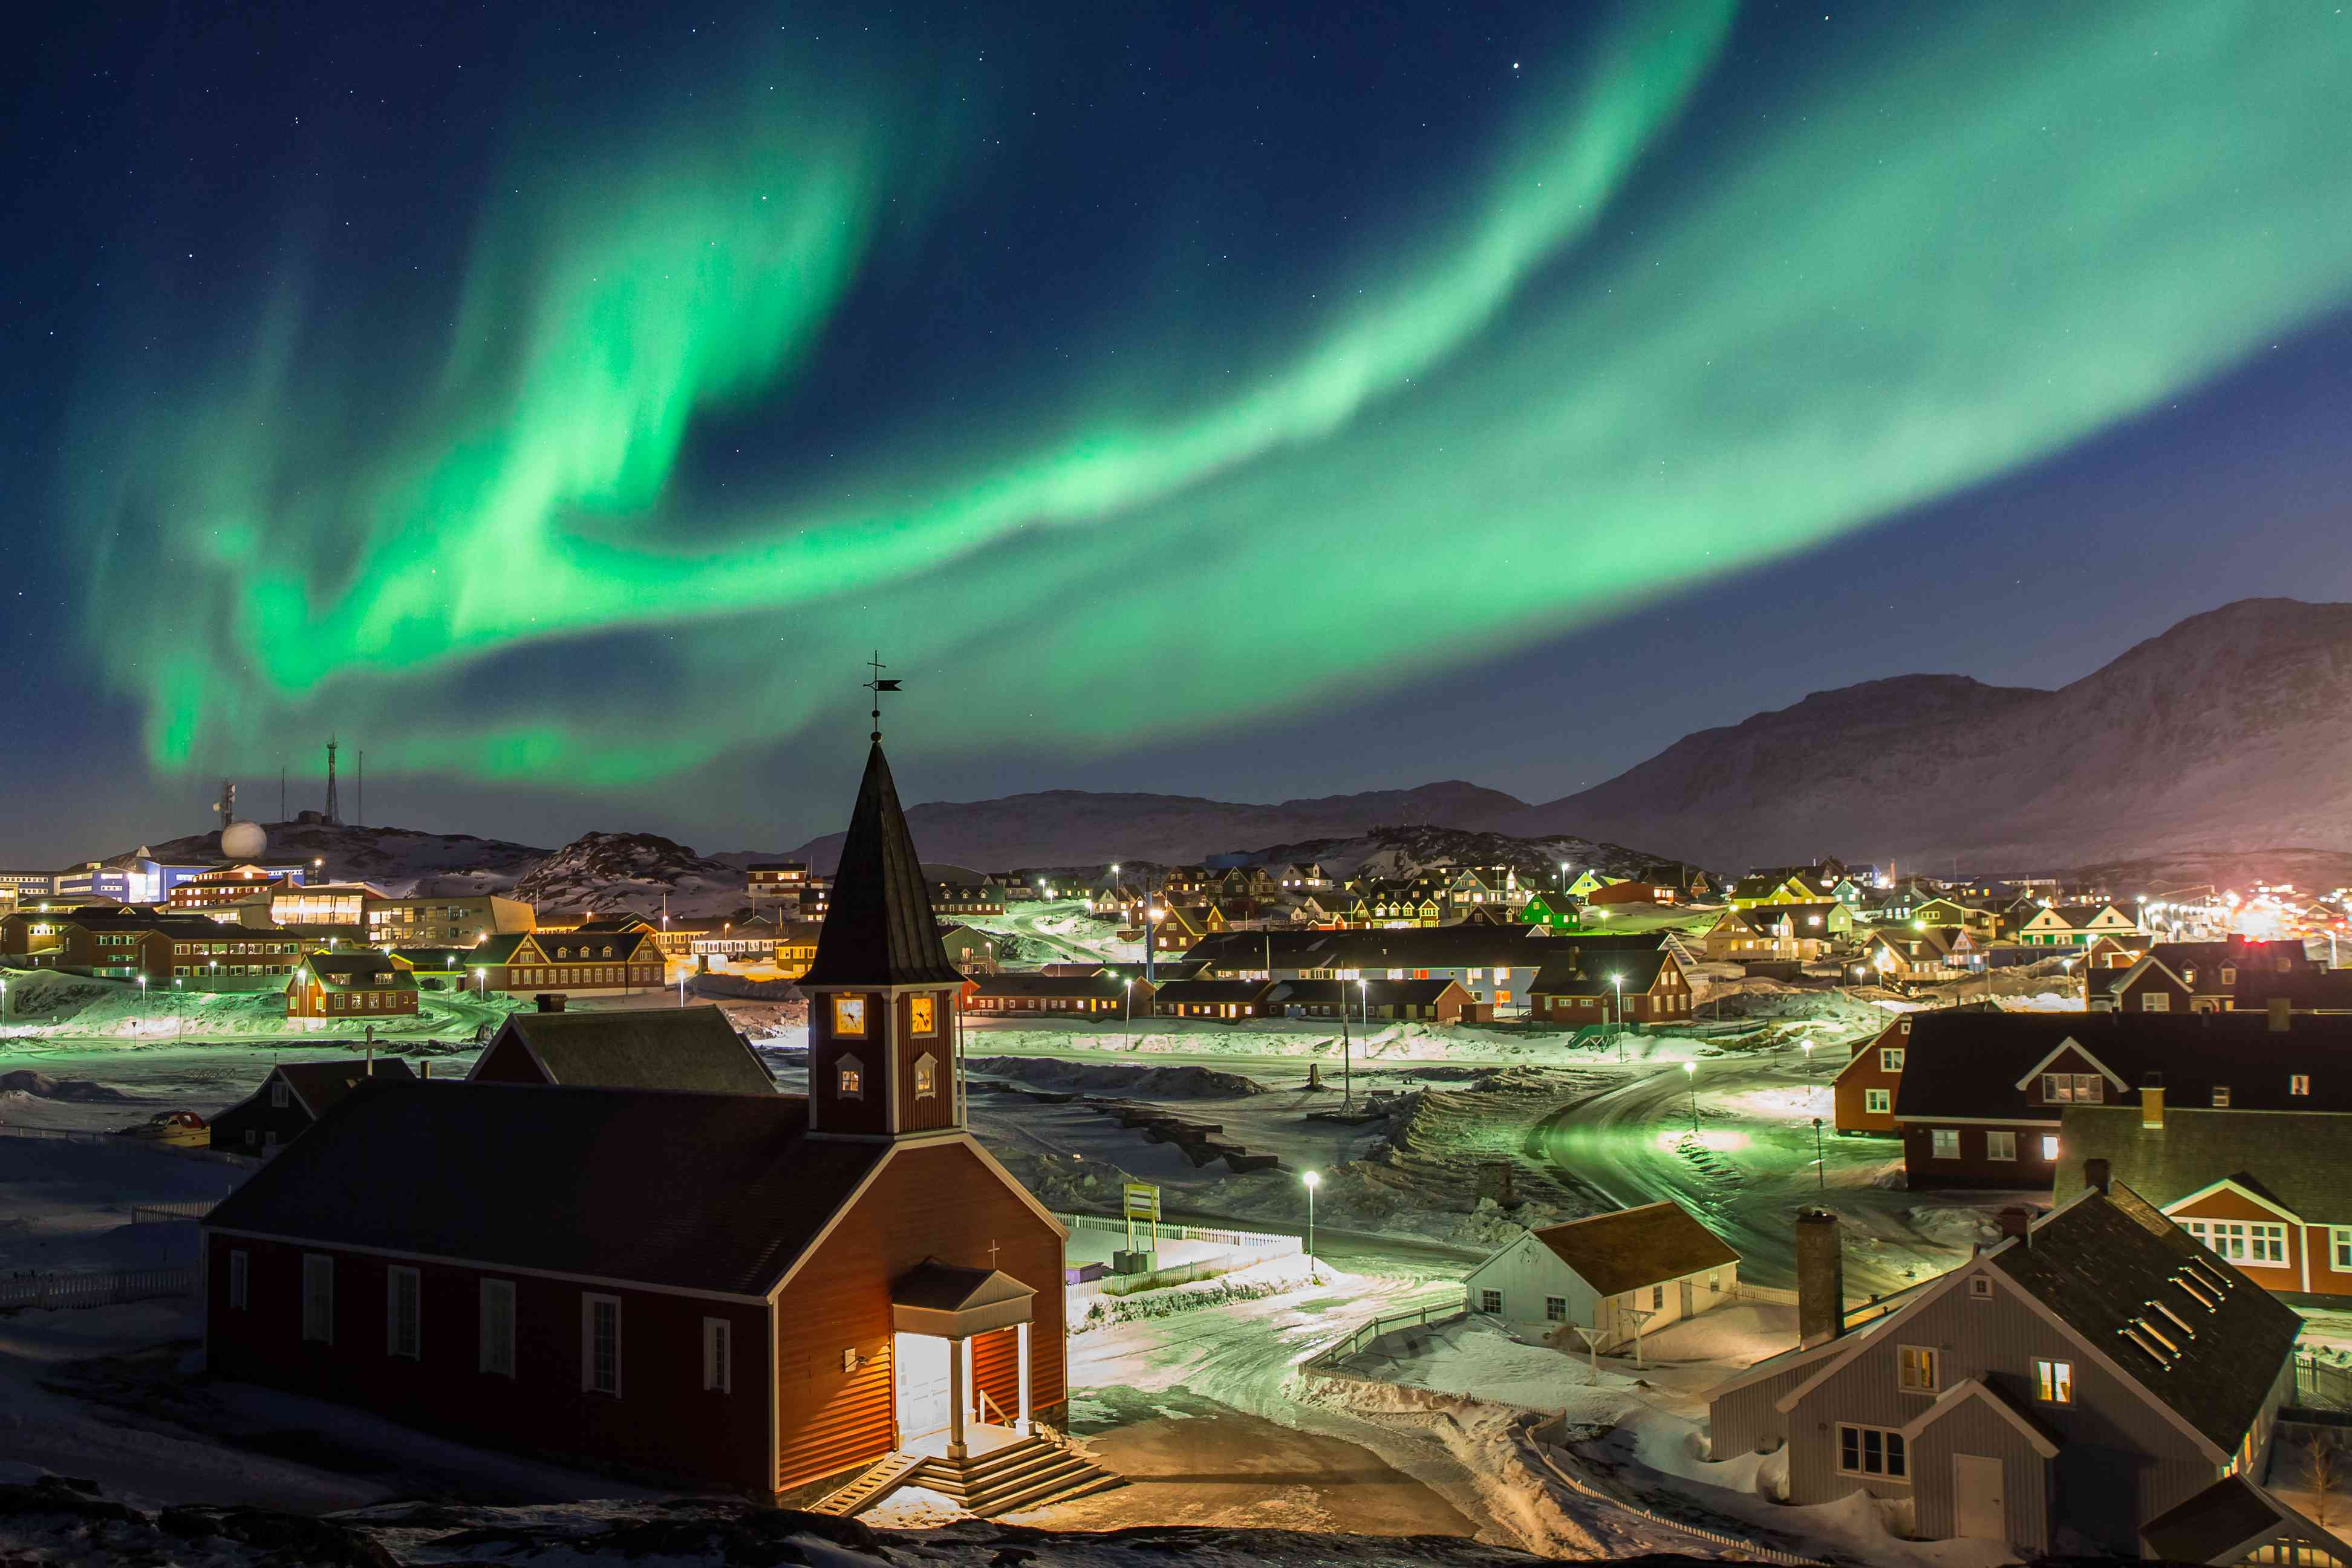 Northern lights above a church and the town of Nuuk